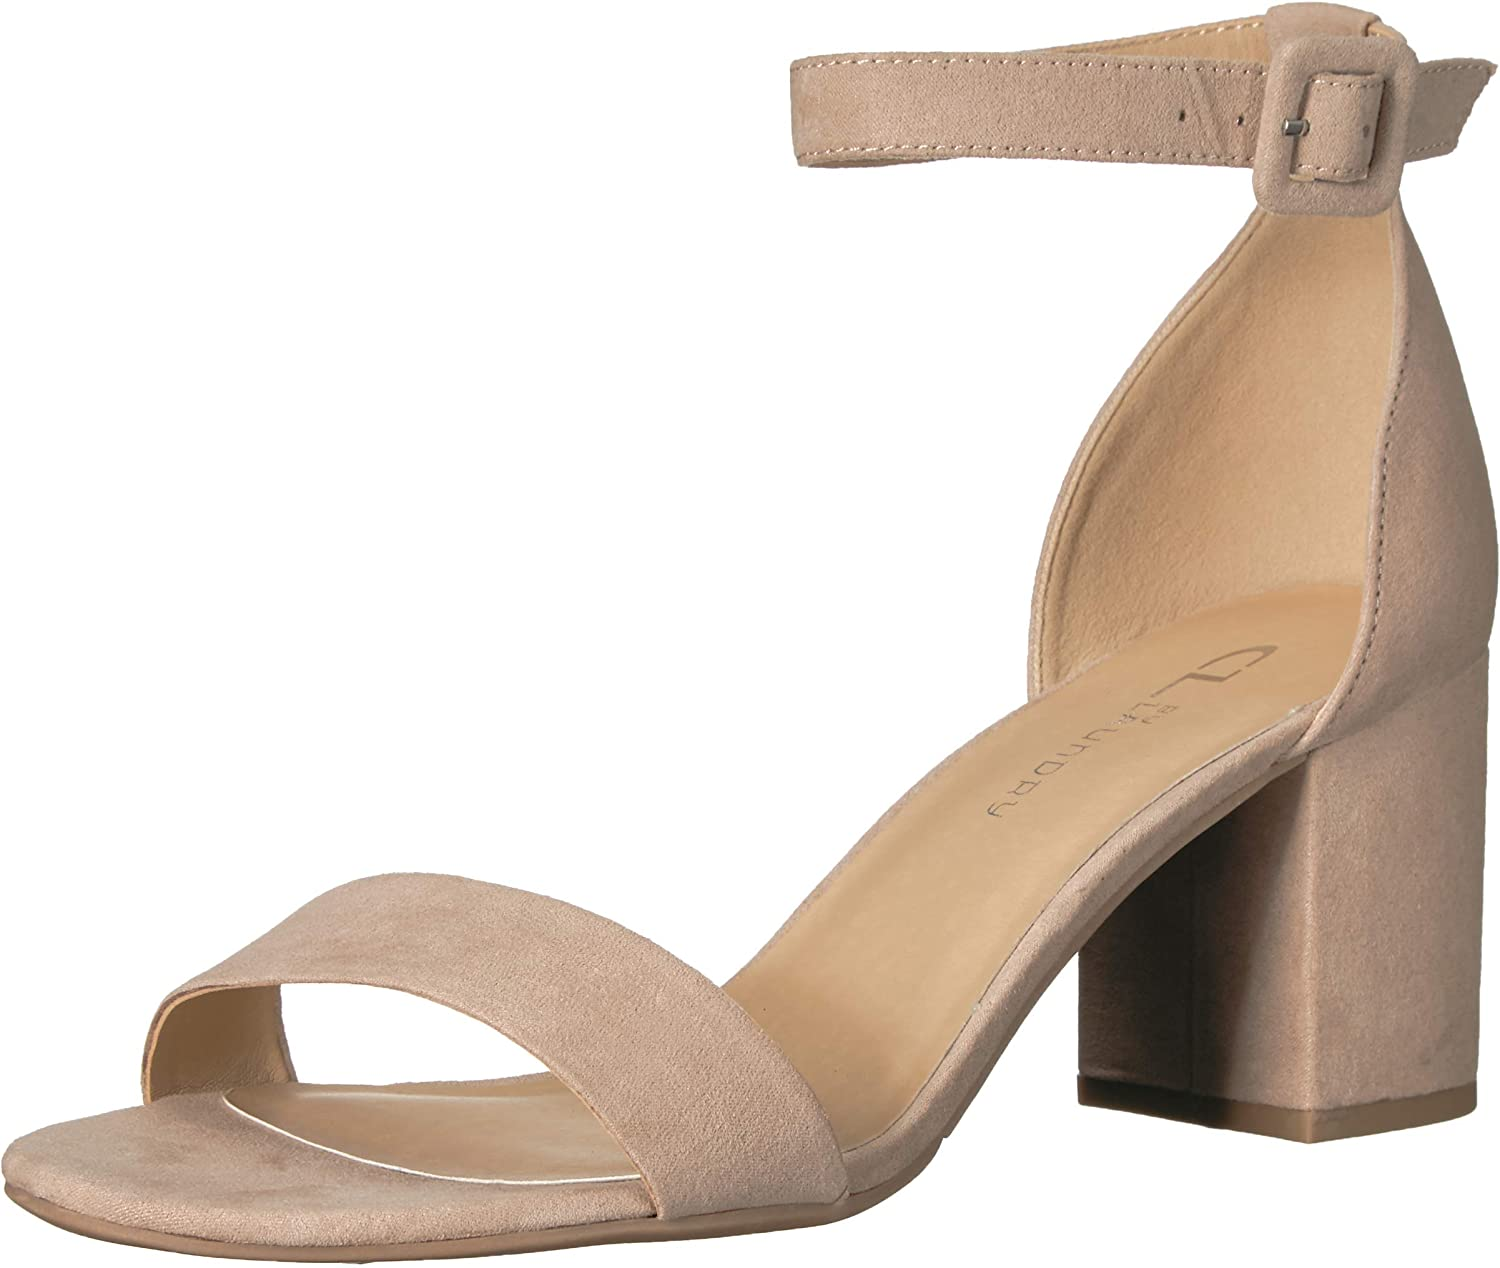 The Best Chinese Laundry Nude Heels